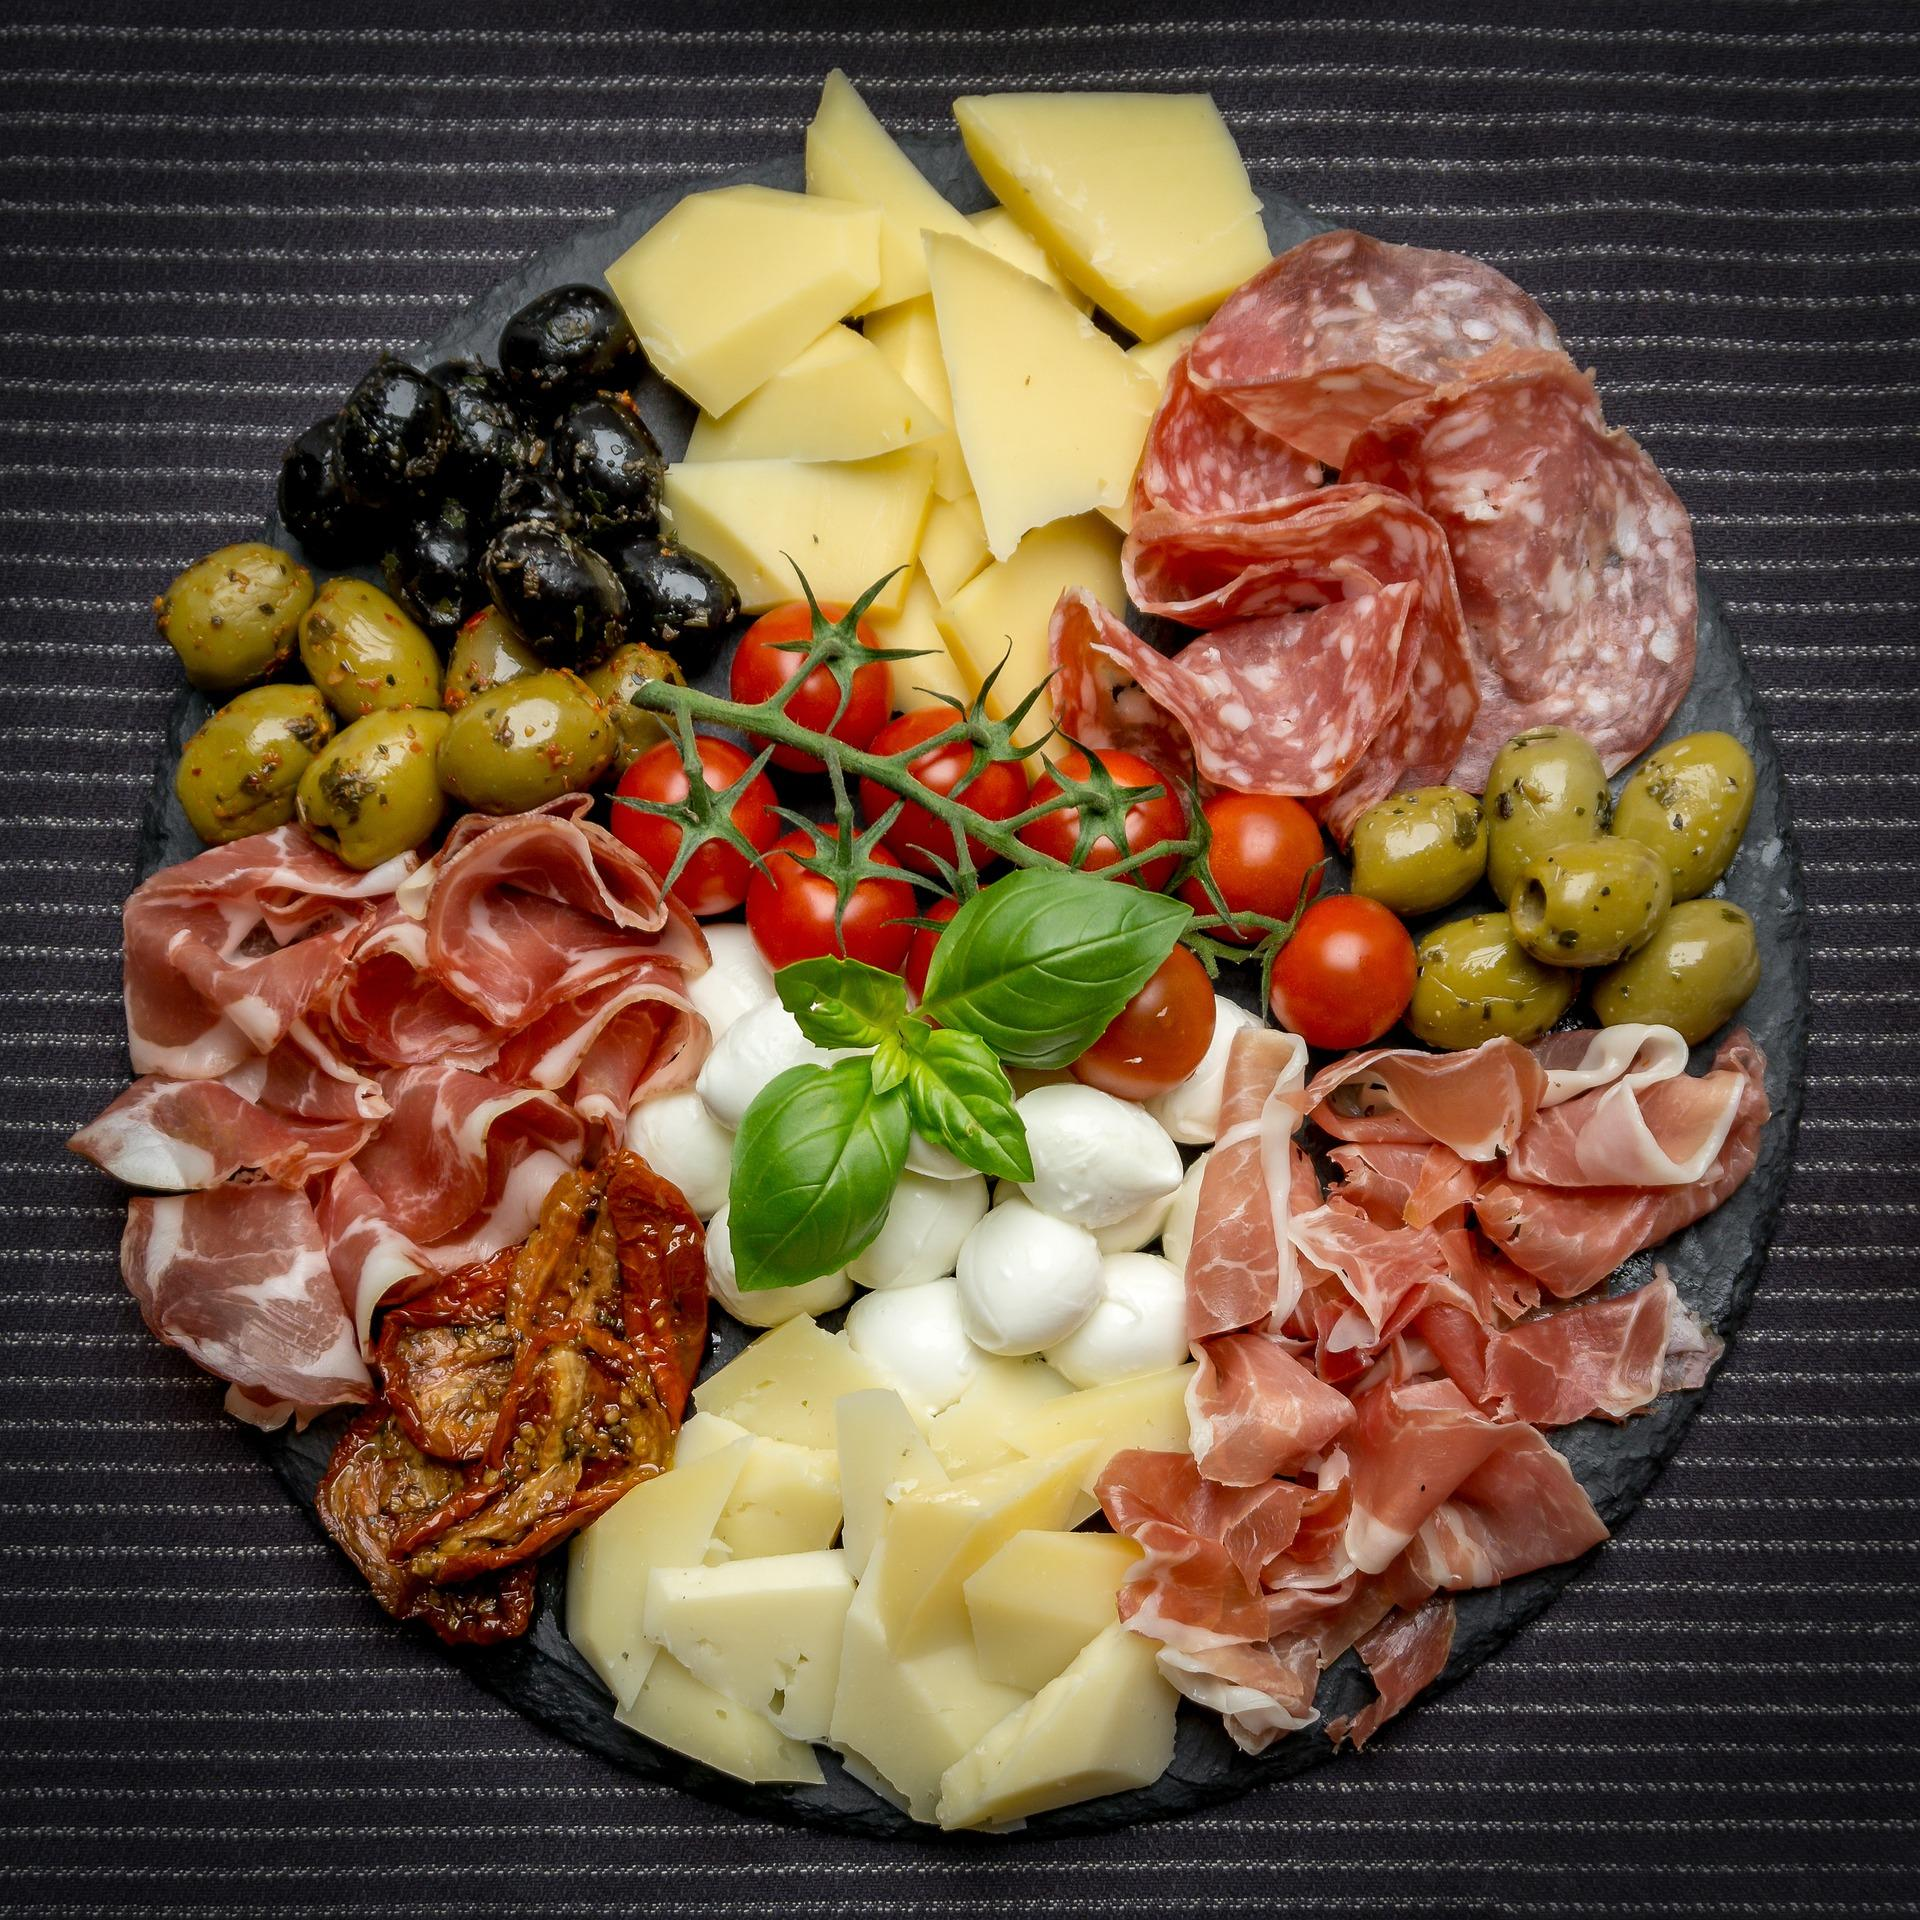 A plate of charcuterie, cheese and olives